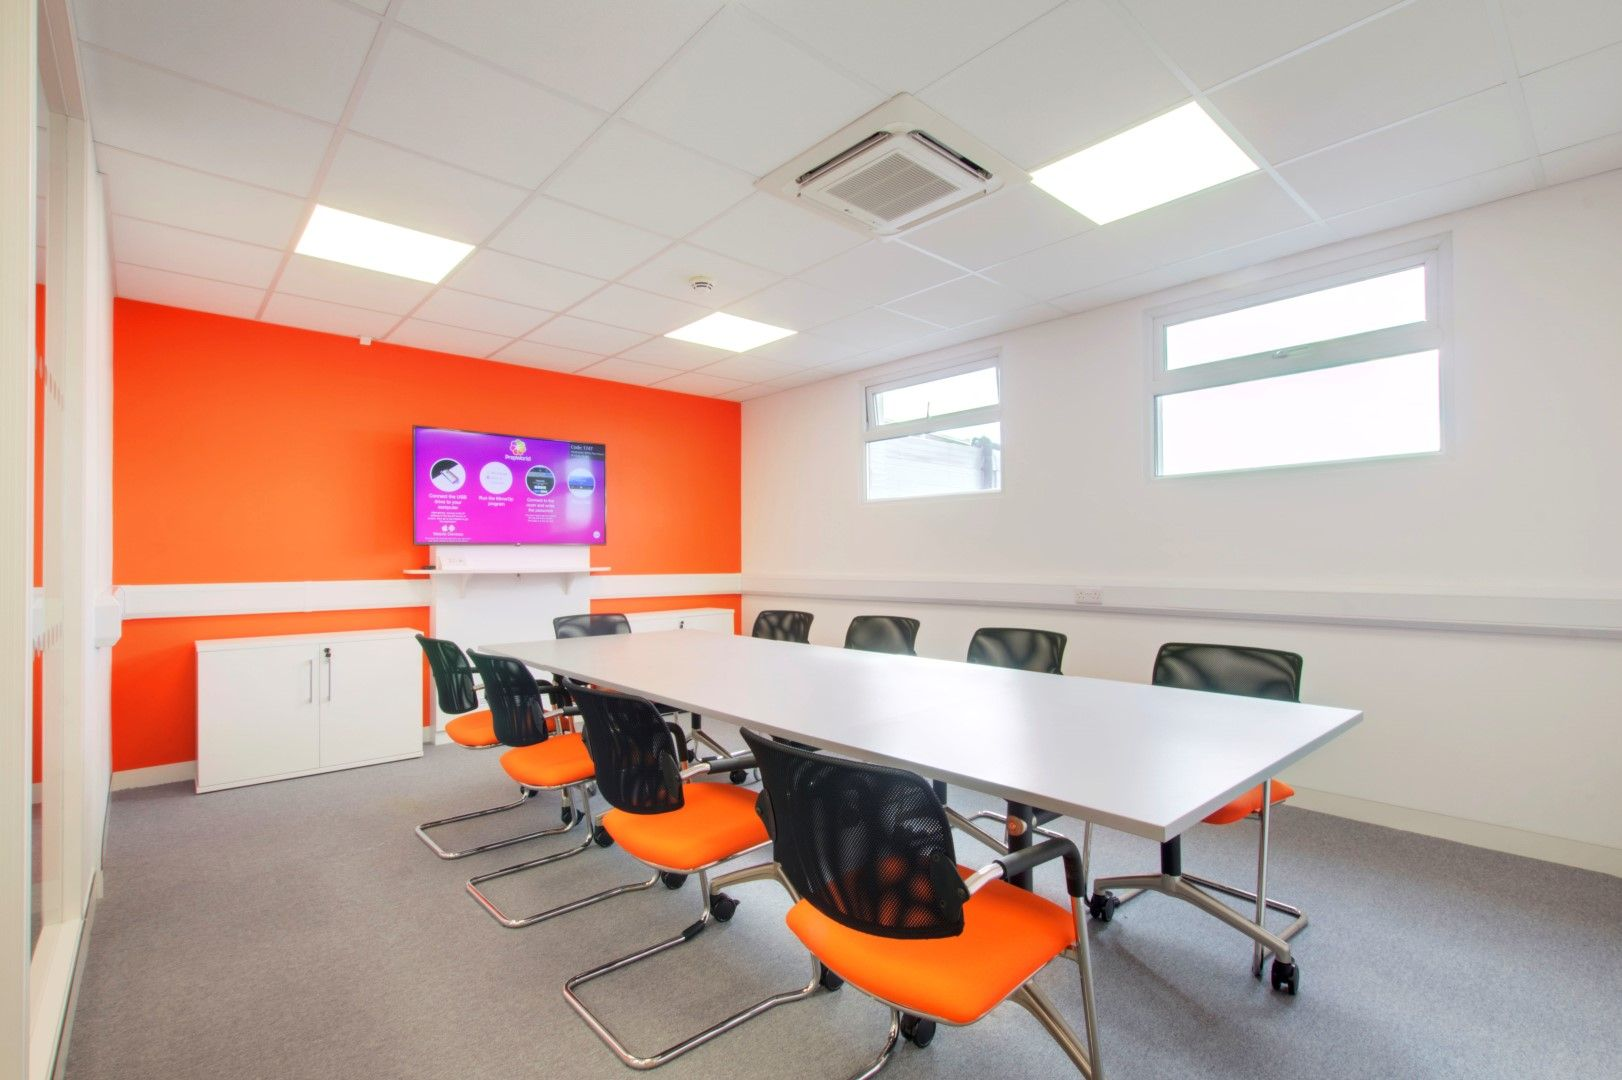 An Office Meeting Boardroom With A Shared Desk And Presentation Screen Meetingroom